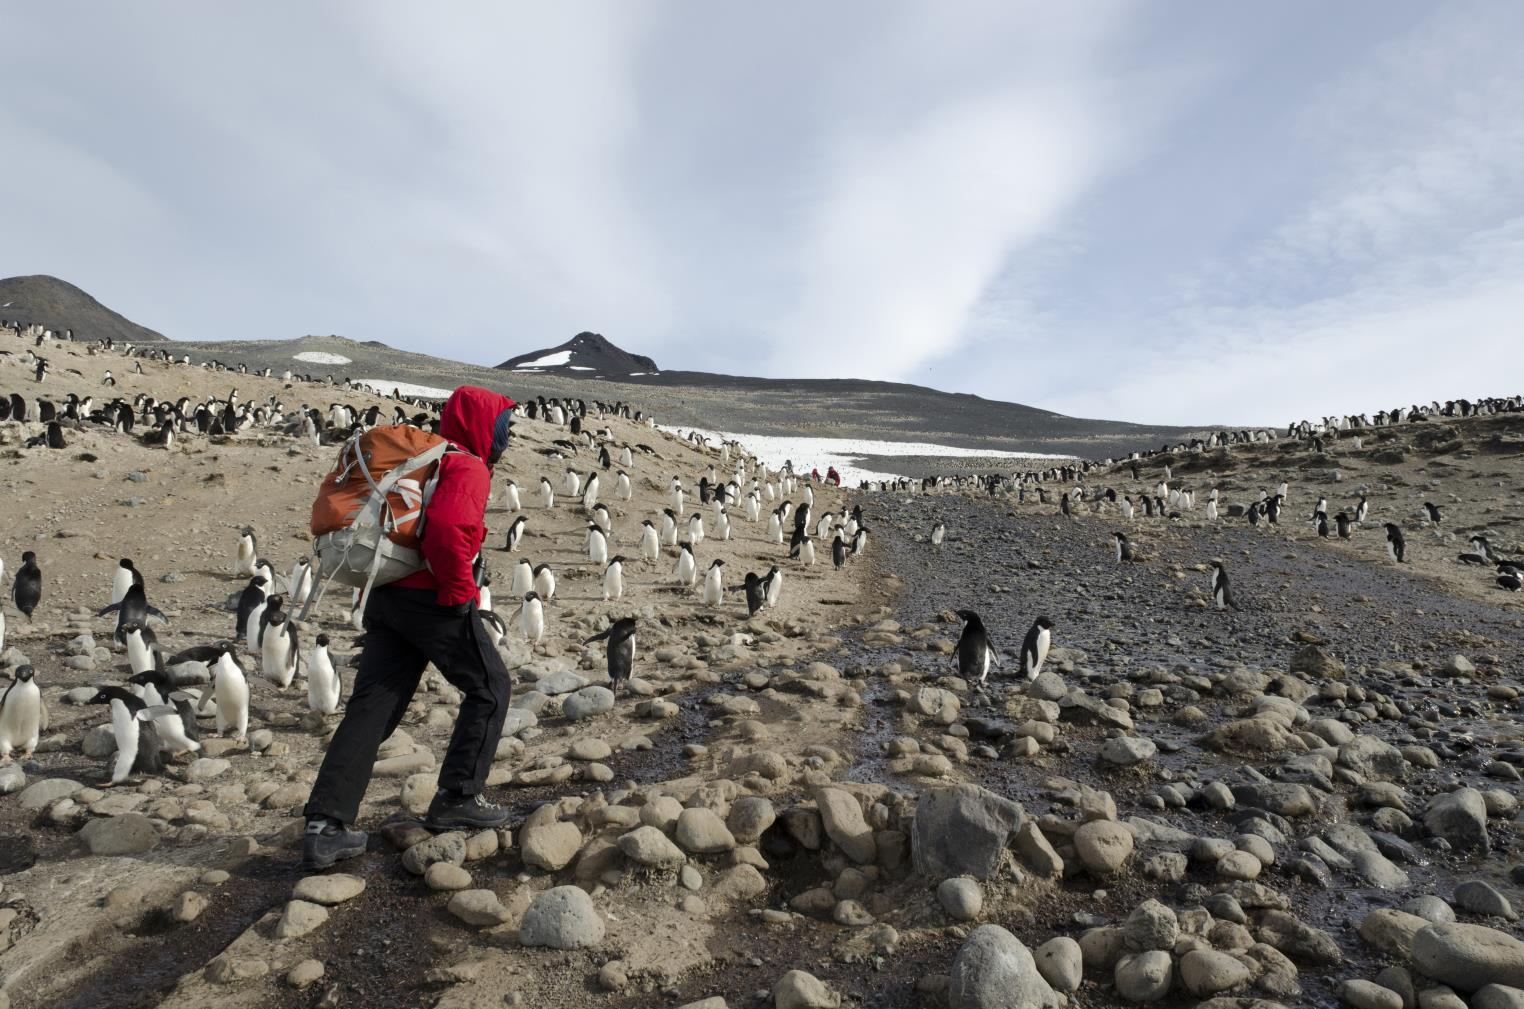 Scientists walks among penguins